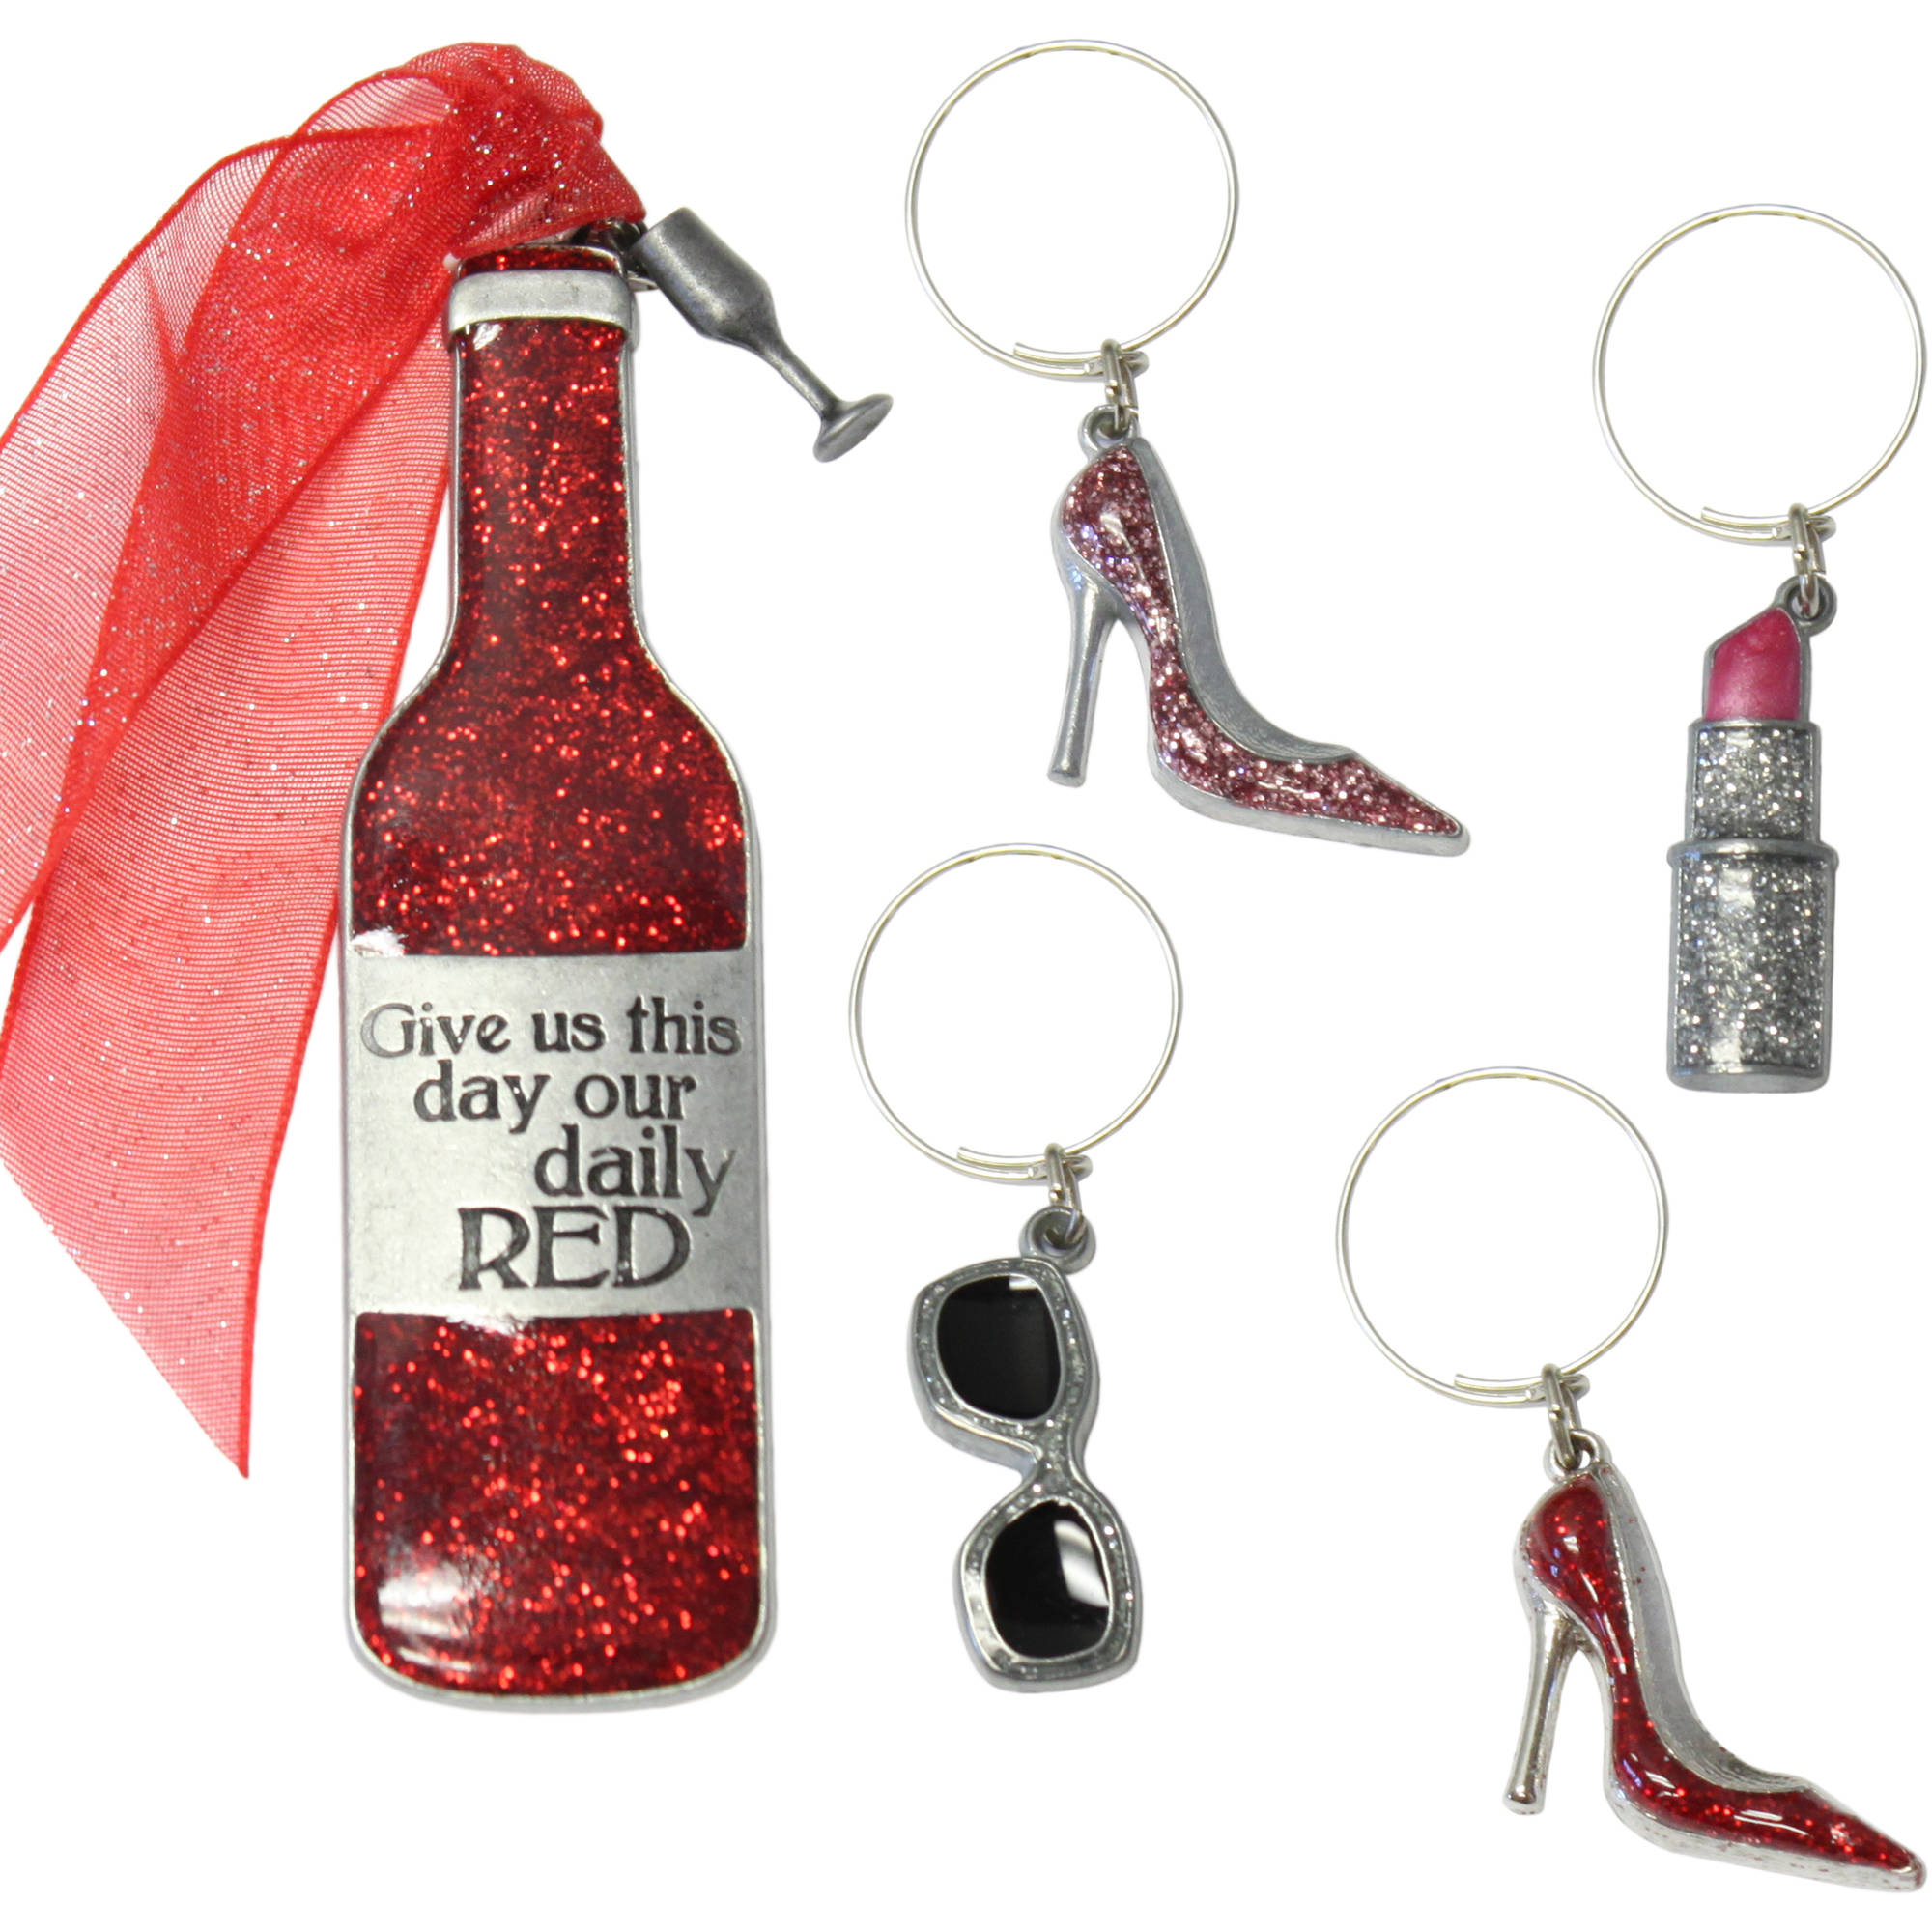 Personalized Gloria Duchin Ladies' Night Out Wine Bottle Ornament and Drink Charms Set